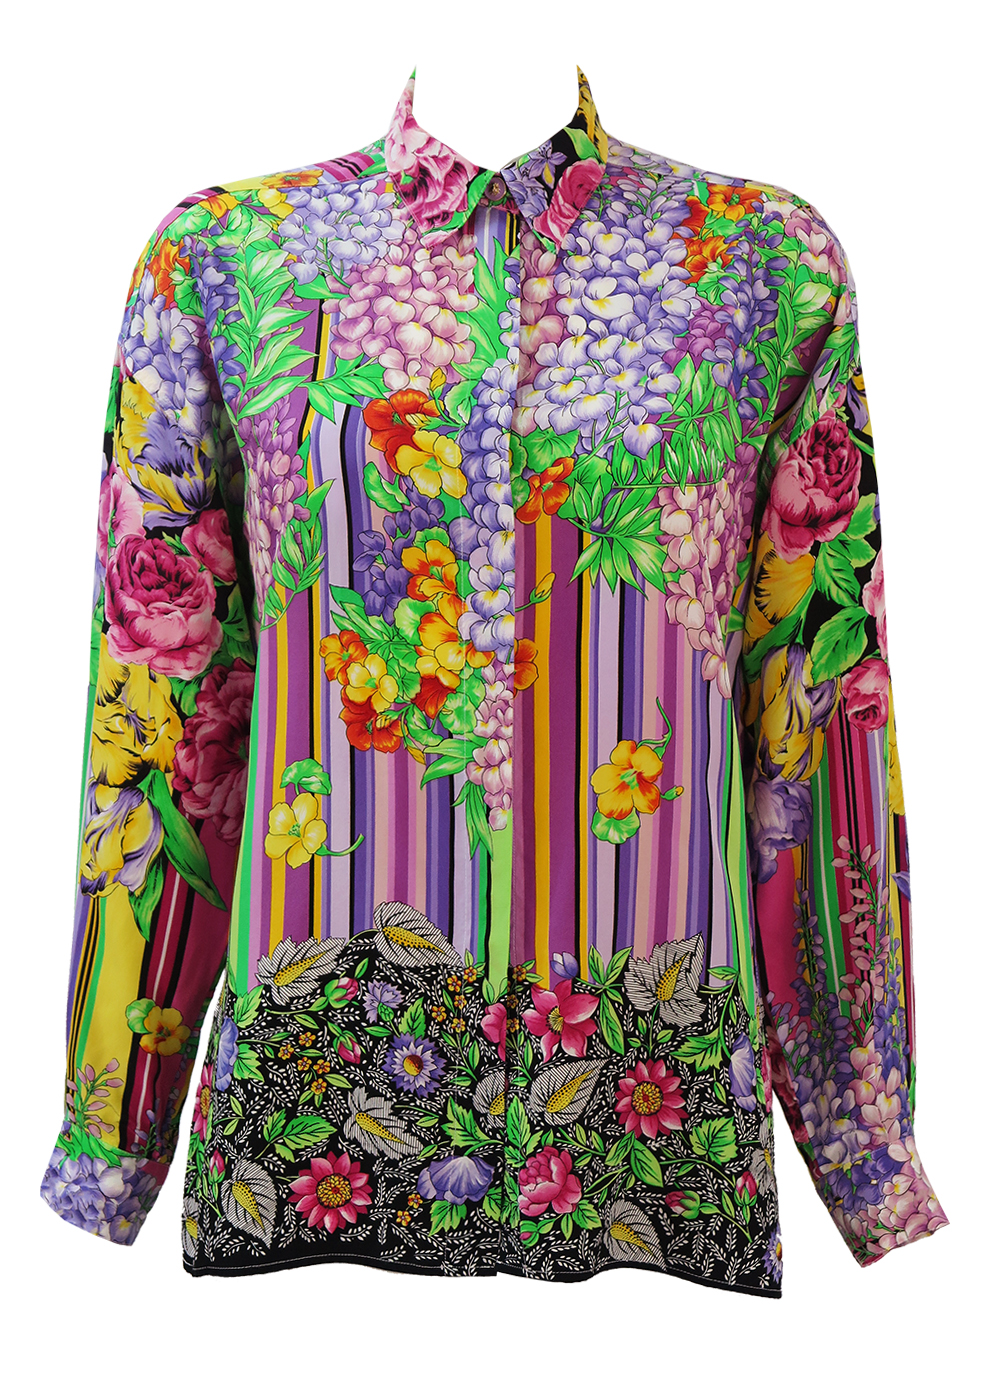 Vintage 90's Versus by Gianni Versace Blouse with Multi coloured Flowers &  Stripes Pattern - M/L